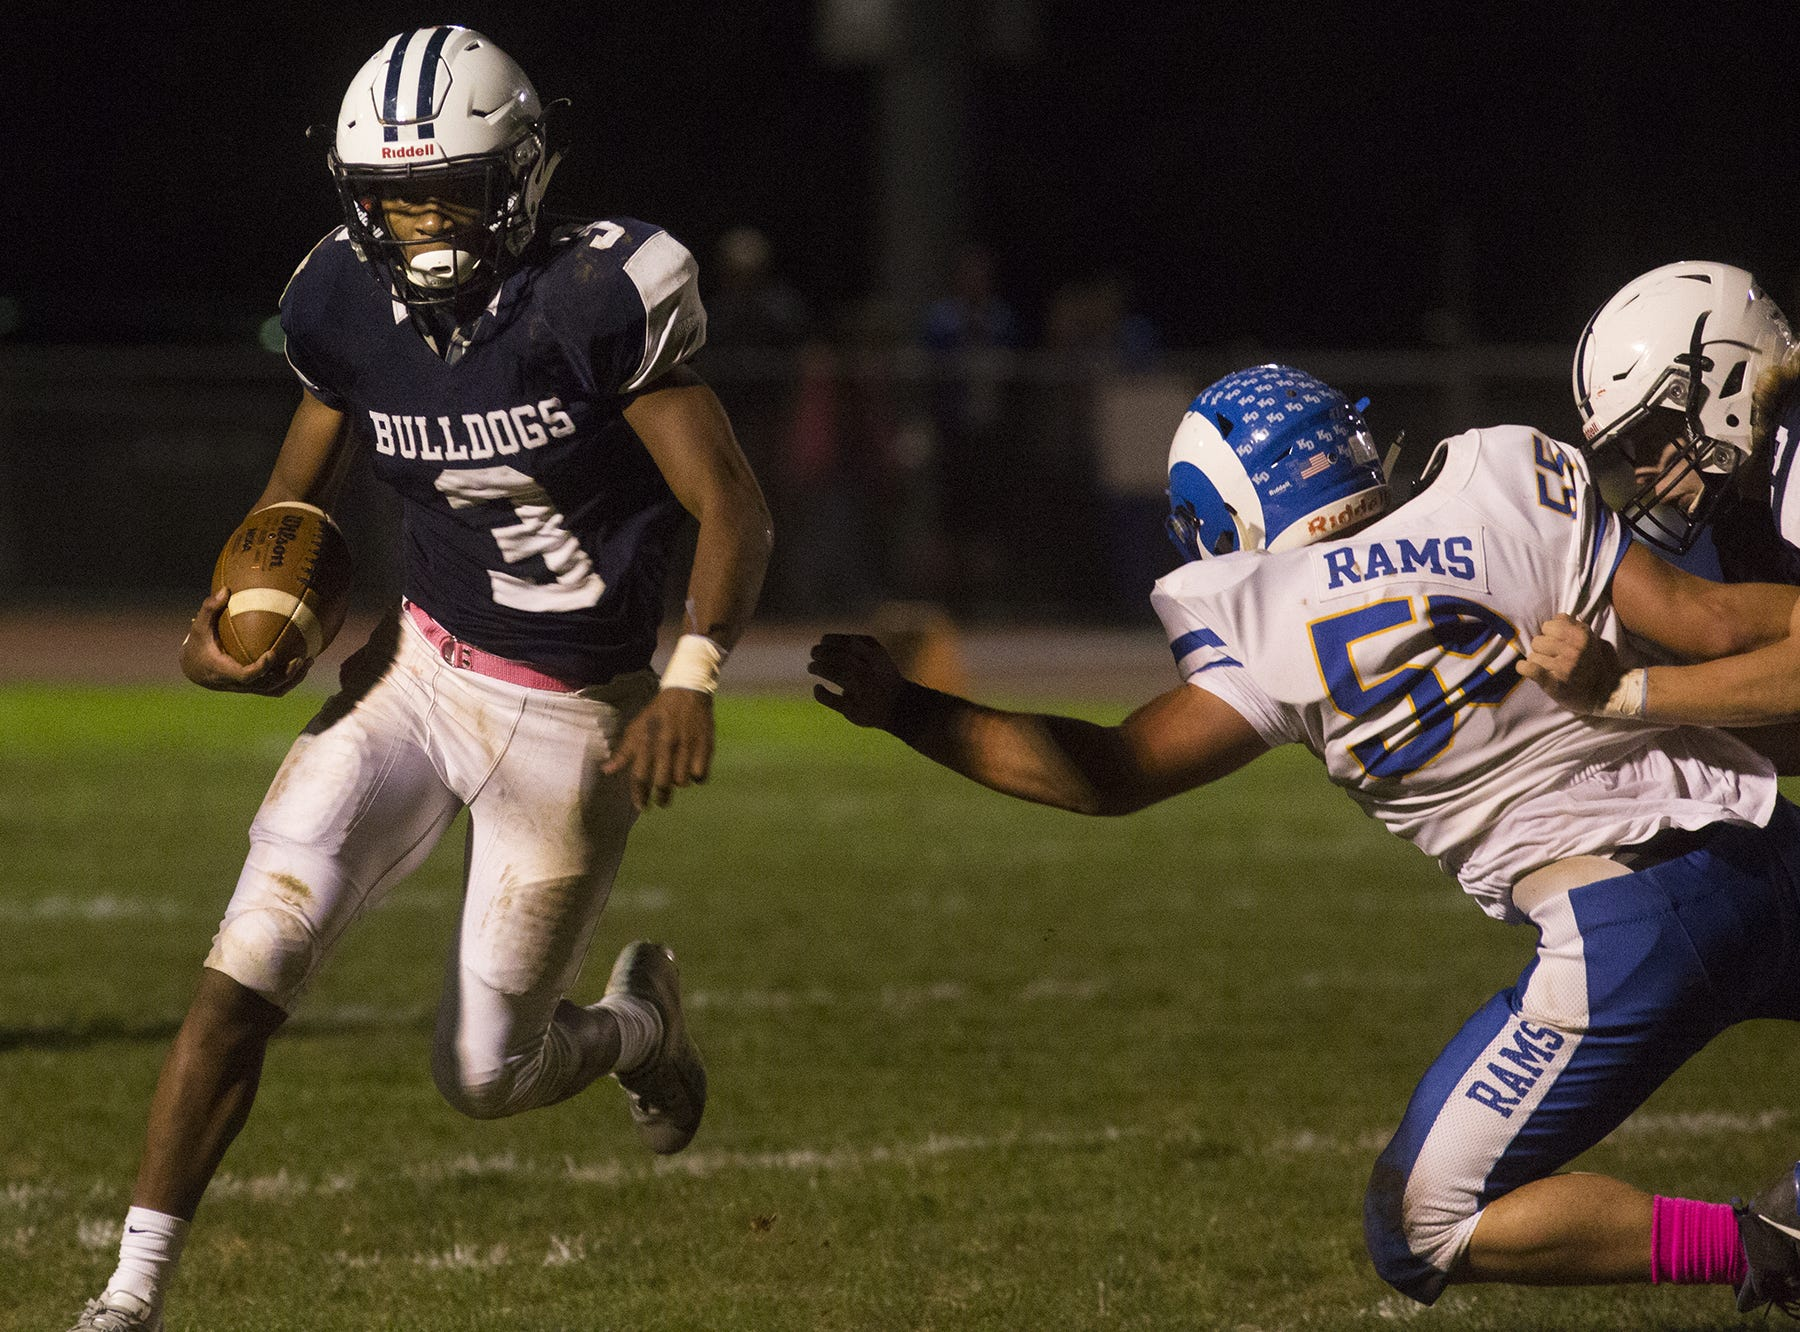 West York's Ay'Jaun Marshall runs the ball. West York defeats Kennard-Dale 32-21 in football at West York Area High School in West York, Friday, October 12, 2018.